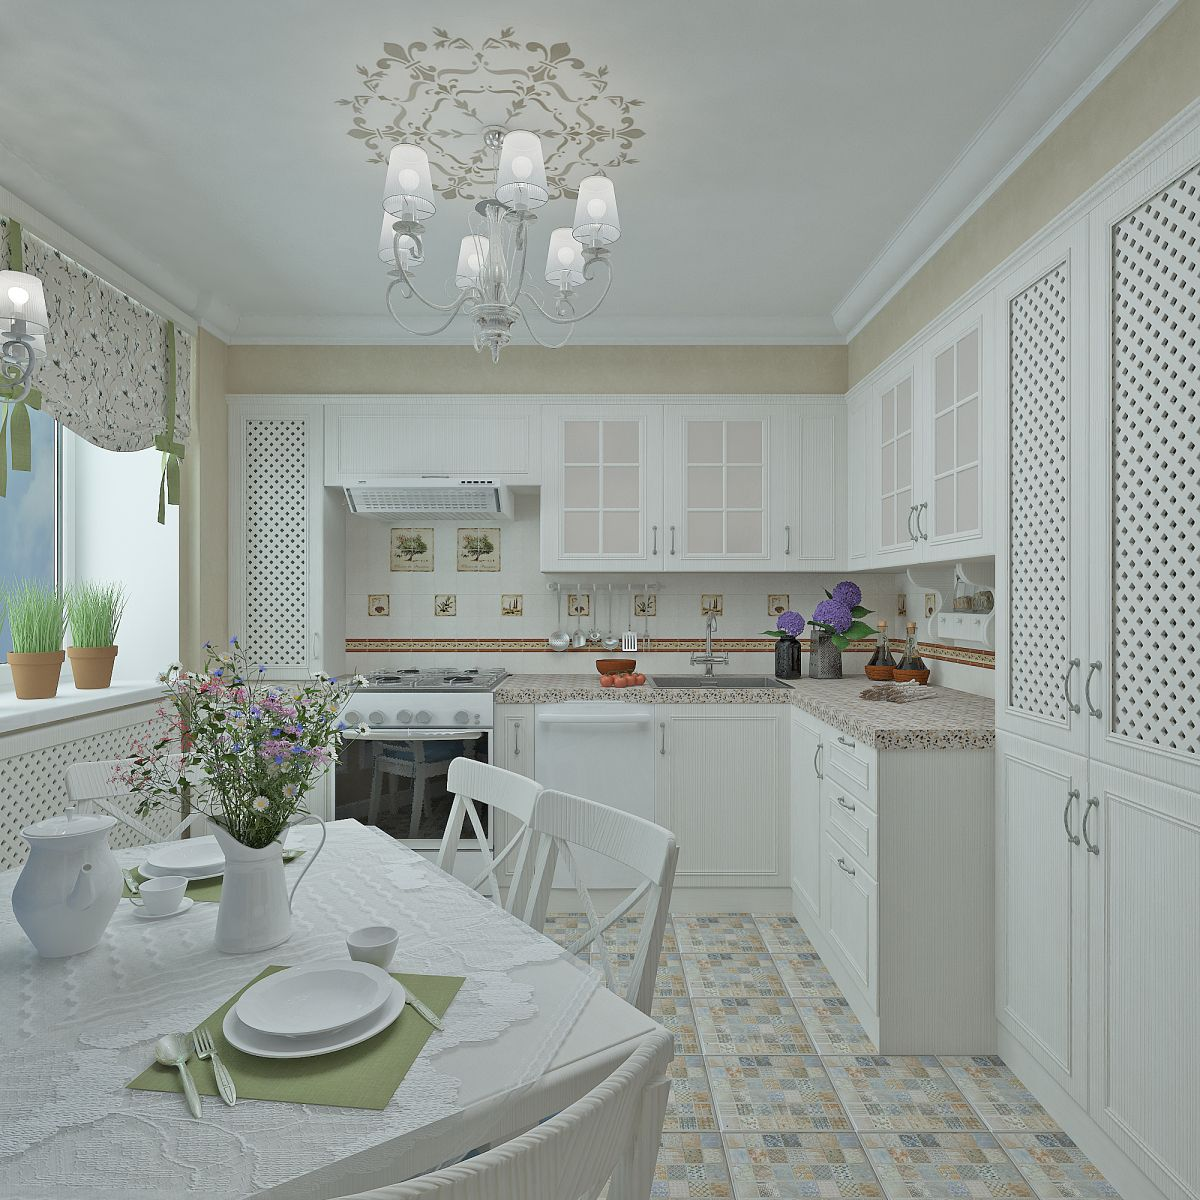 Provence Style Kitchen Interior Design for Cozy Life with Taste of Classics. Comfortable atmosphere with tiled white floor and neat pastel furniture facades